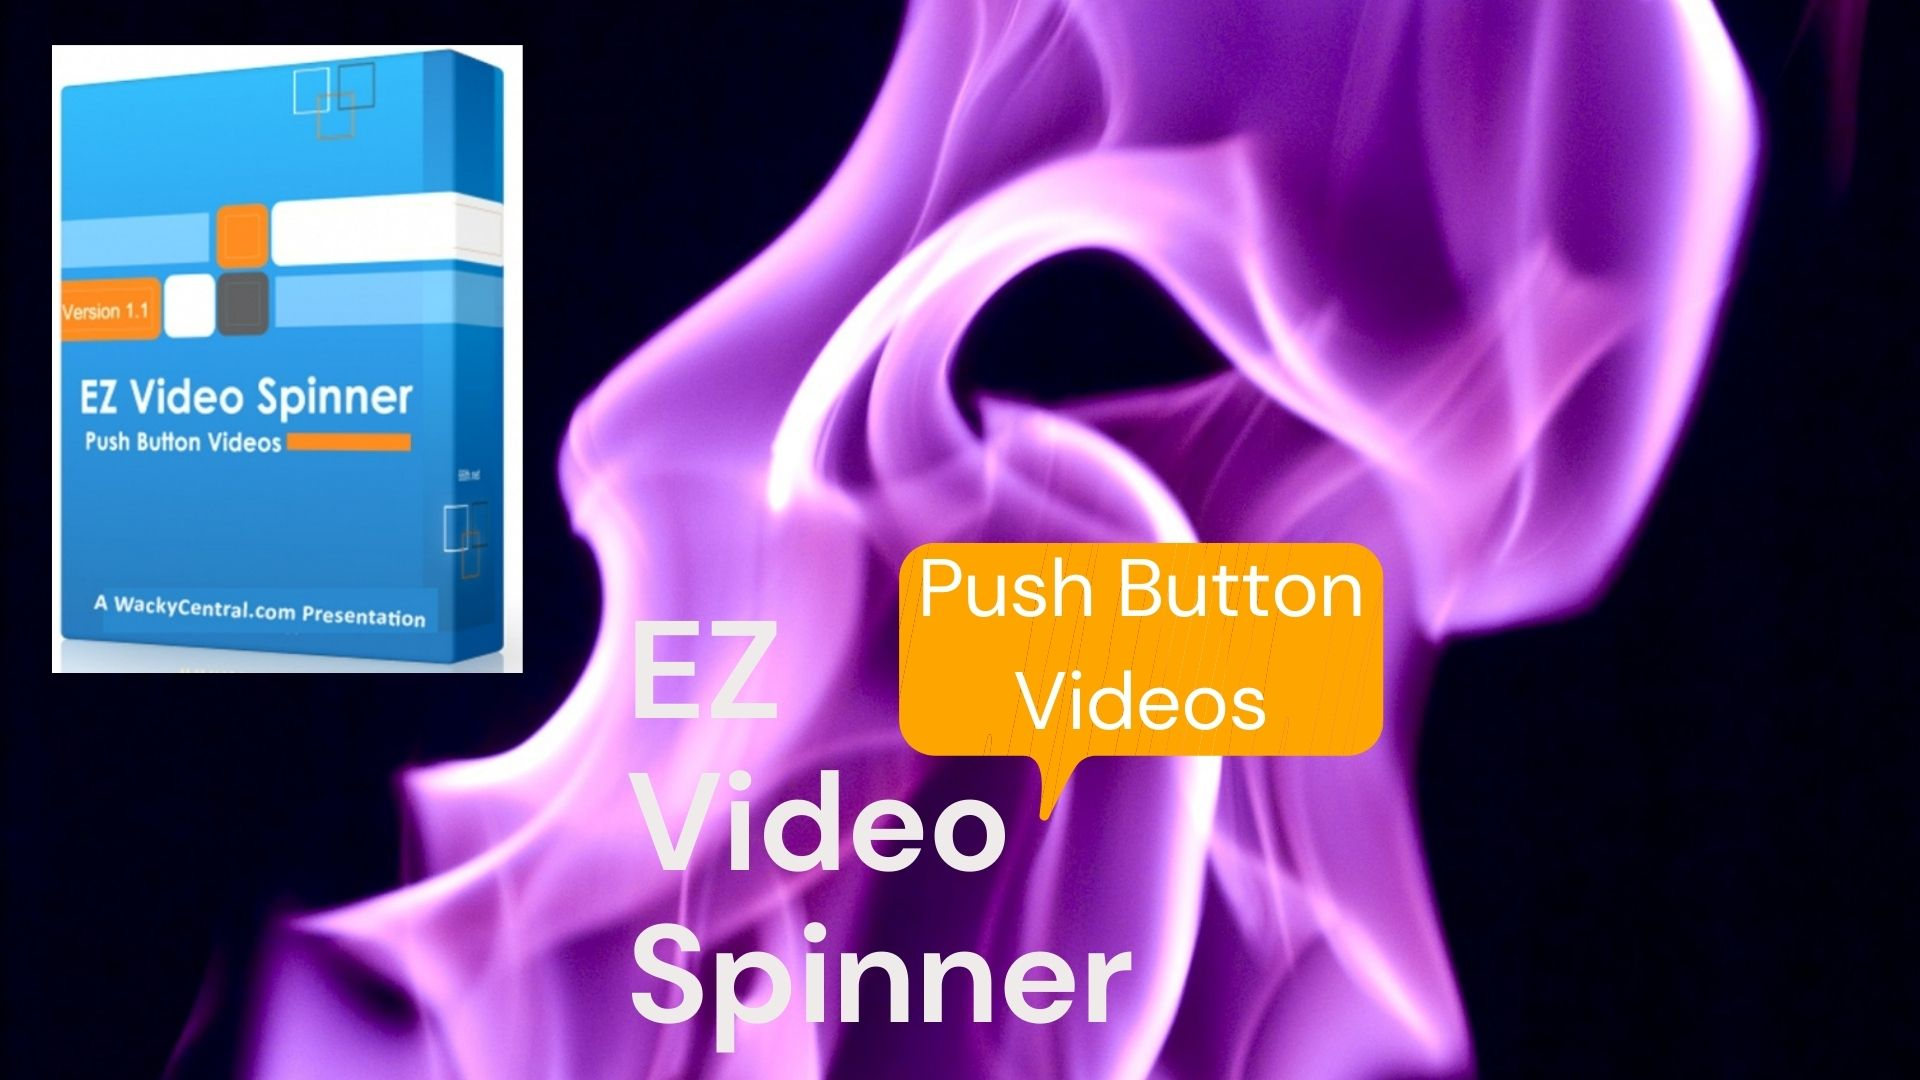 EZ Video Spinner Push Button Videos with Fifteen mp3 audio